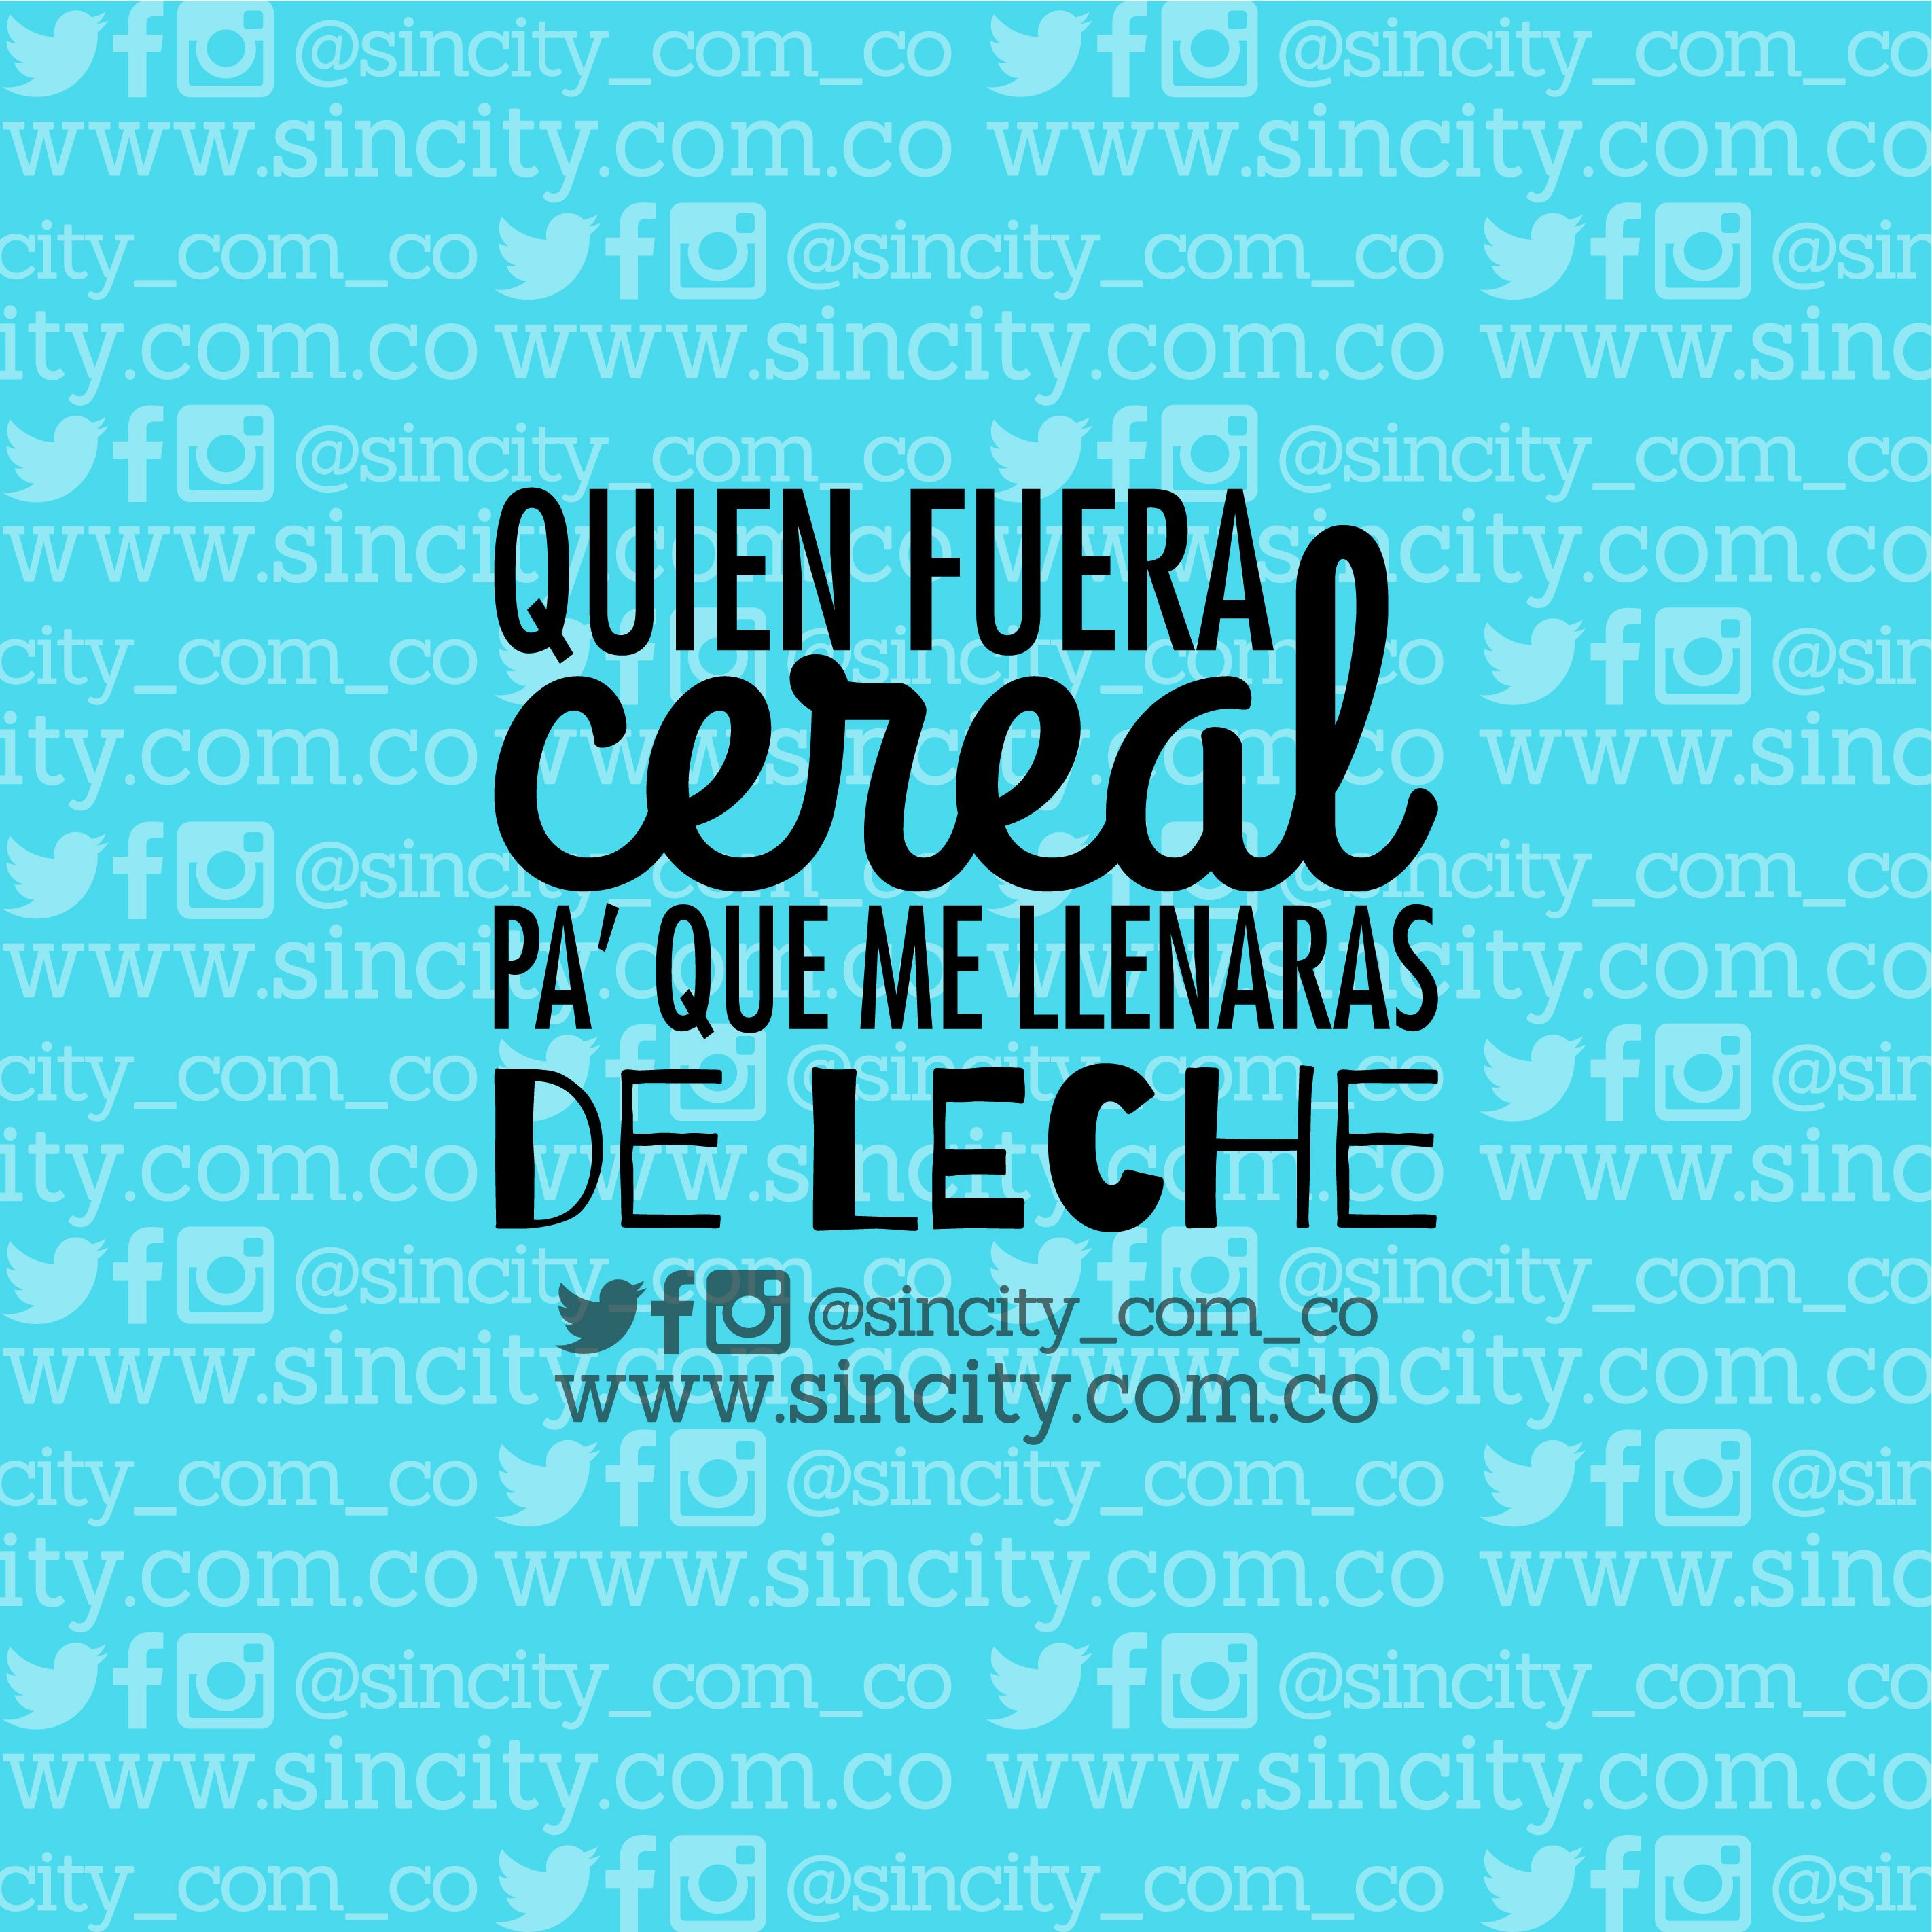 BuenasNoches frases frasessincity sincity piropos mujeres hombres cereal